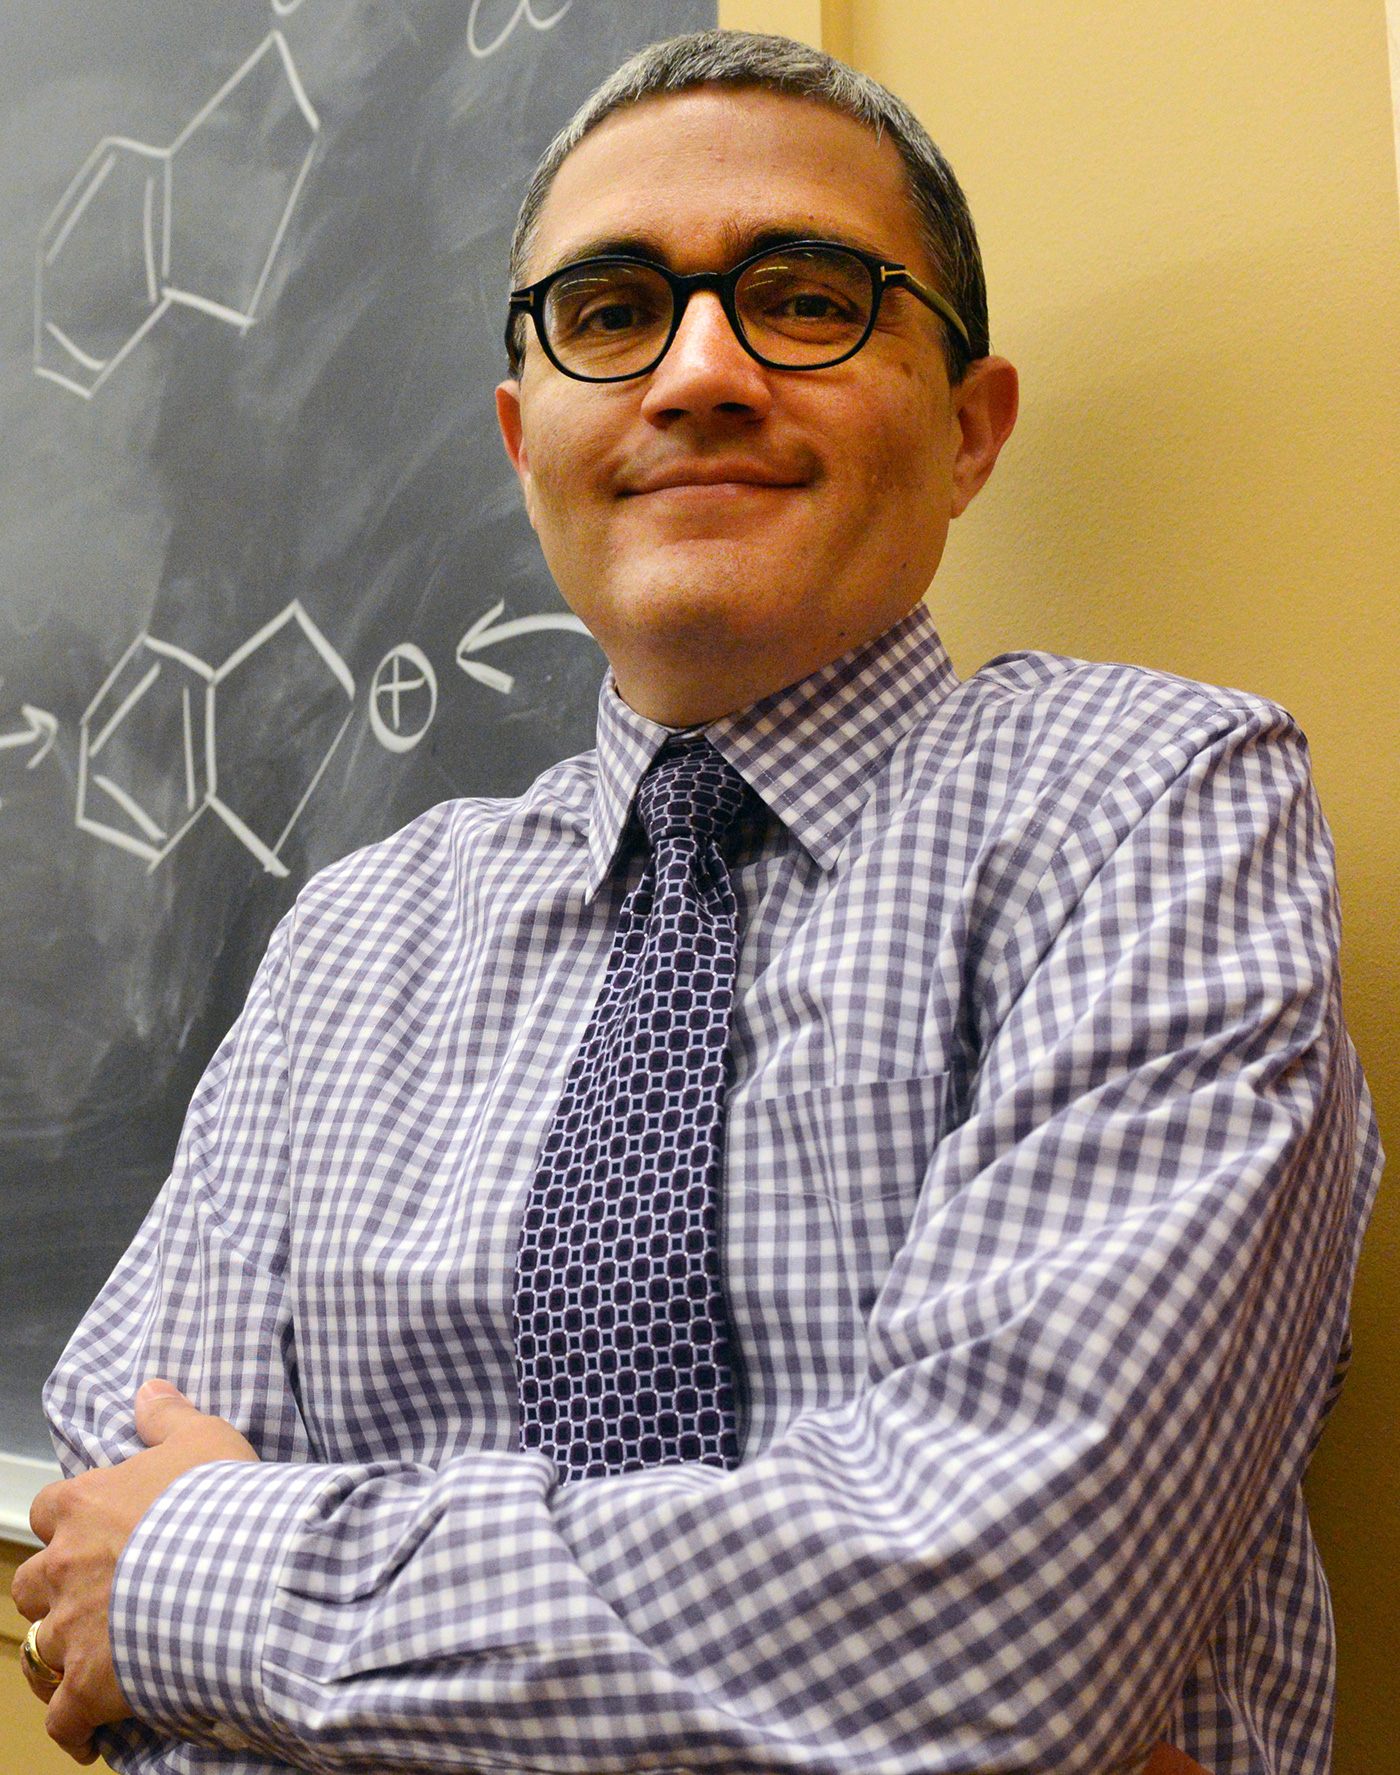 Javier Horta is an Associate Teaching Professor, Clinical Science Coordinator in the Biomedical and Nutritional Sciences Department at UMass Lowell.